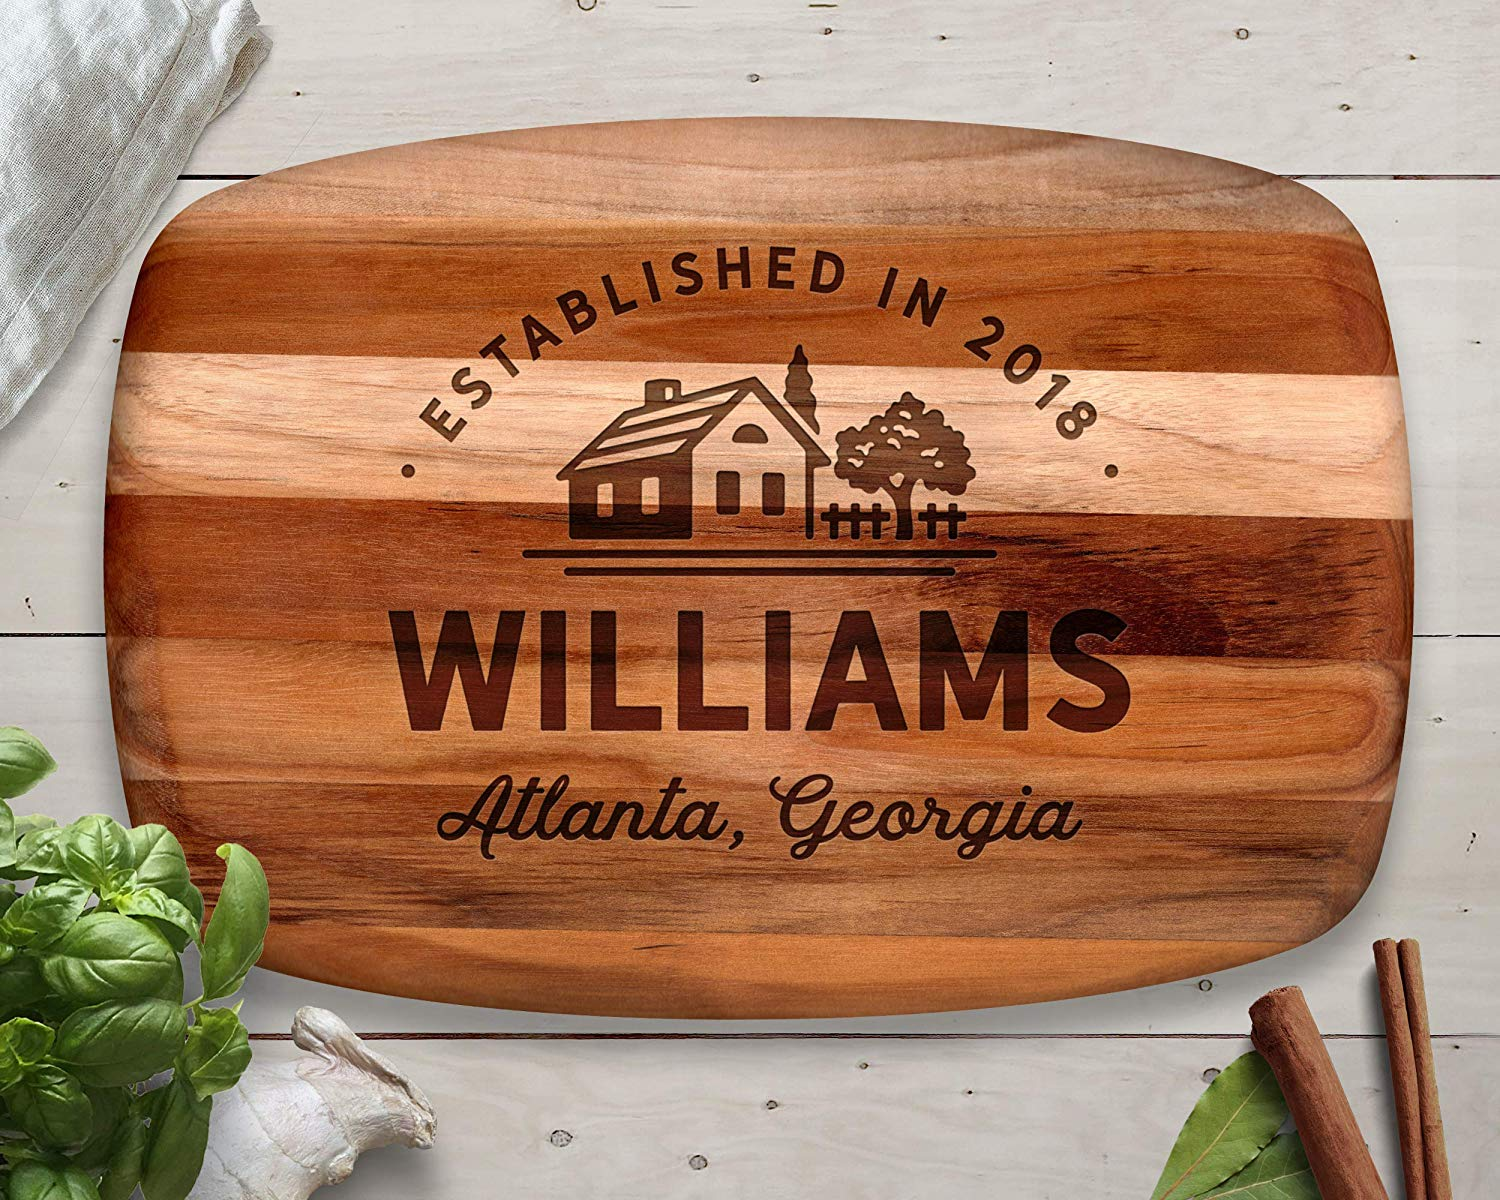 Custom Cutting Board, Teak, Personalized Cutting Board, Christmas Gift Ideas, Christmas Gifts, Personalized Gift, Gifts for Her, Christmas 2018, Gift for Parents, Gift for Wife